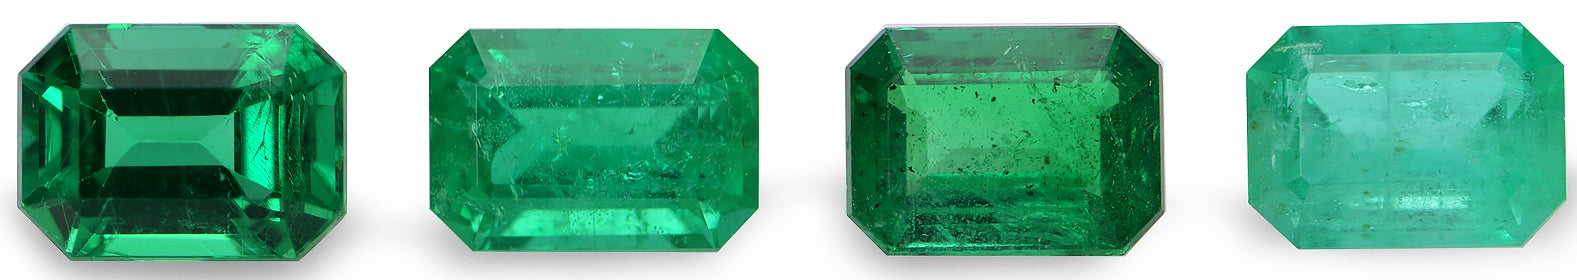 Emerald Jewelry | Emerald Diamond Ring, Earrings and Necklace